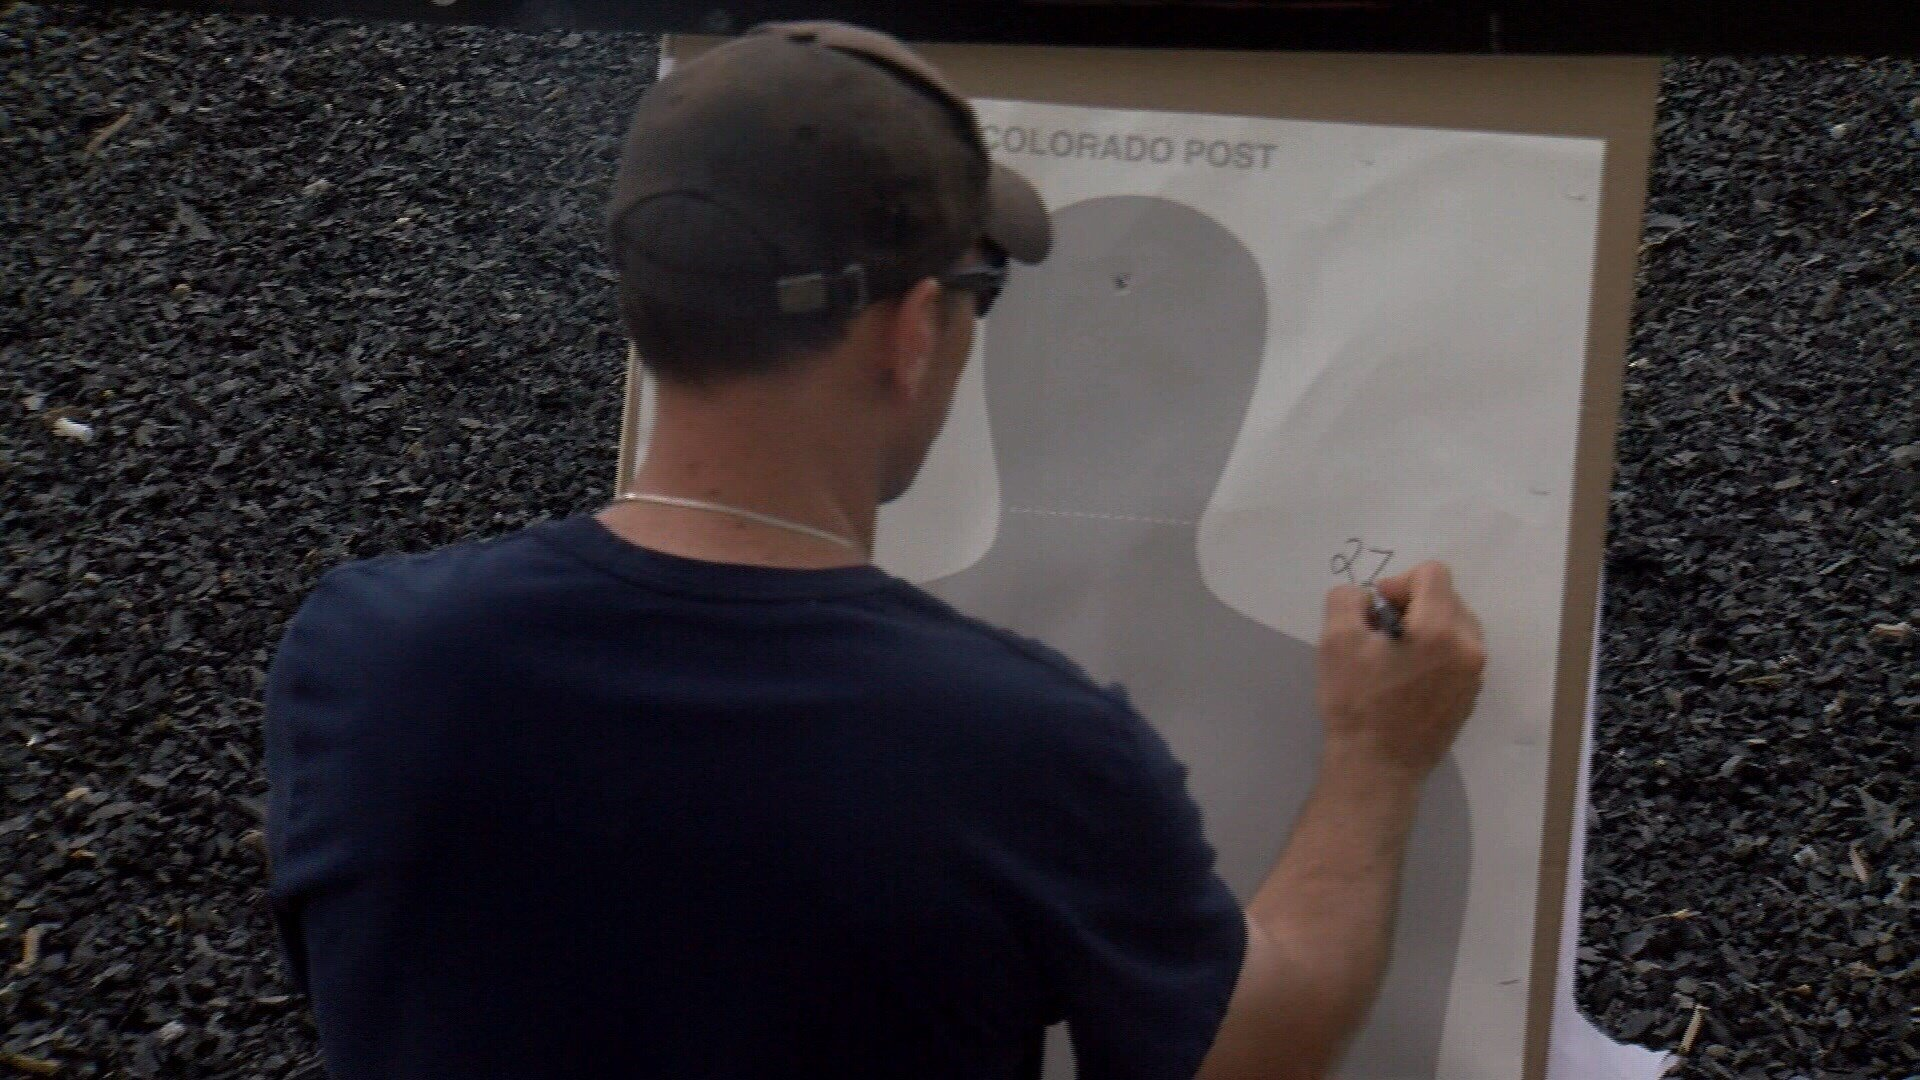 A teacher looks at his target at the shooting range near the Weld County Sheriff's Office.